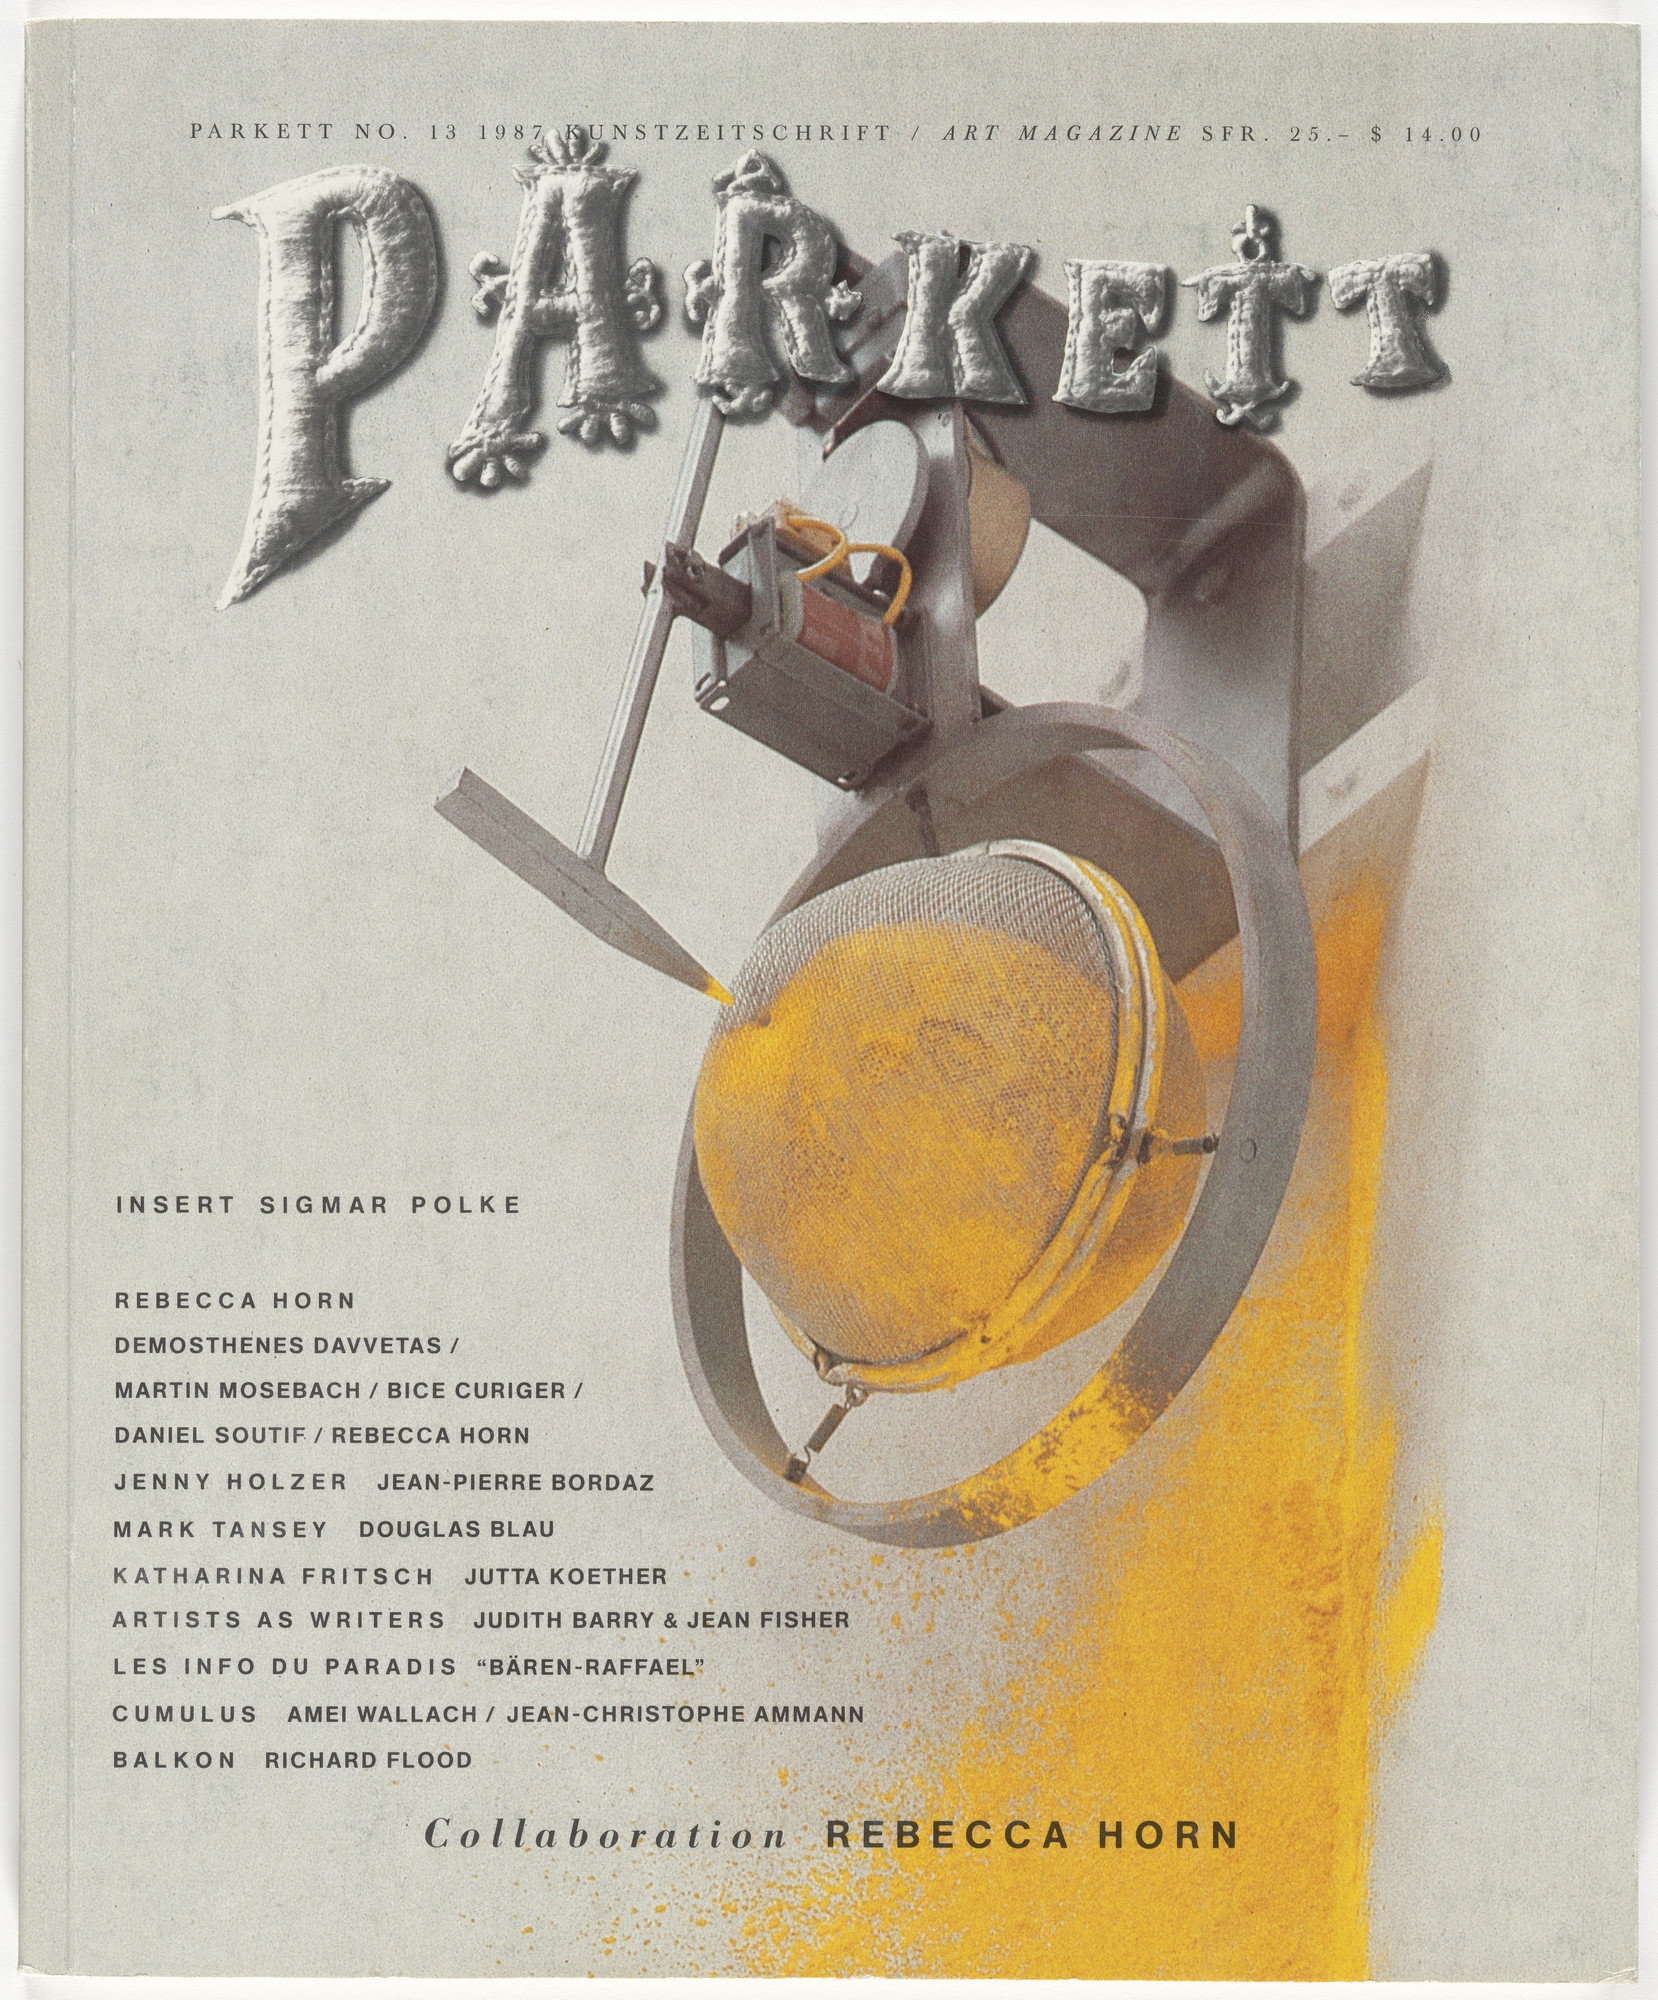 Various Artists, Rebecca Horn, Sigmar Polke. Parkett no. 13. 1987